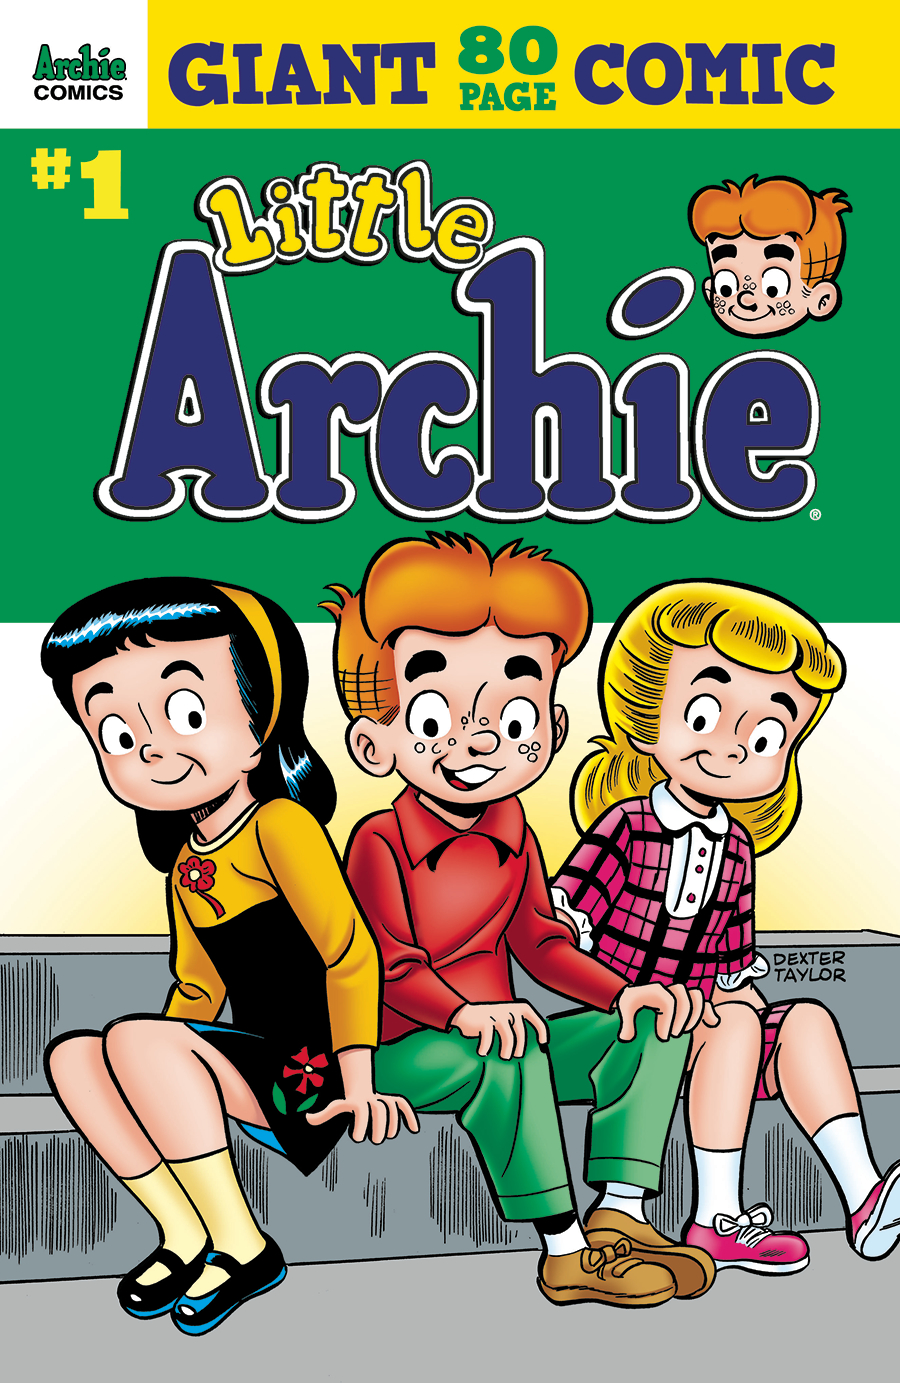 LITTLE ARCHIE 80 PAGE GIANT COMIC #1